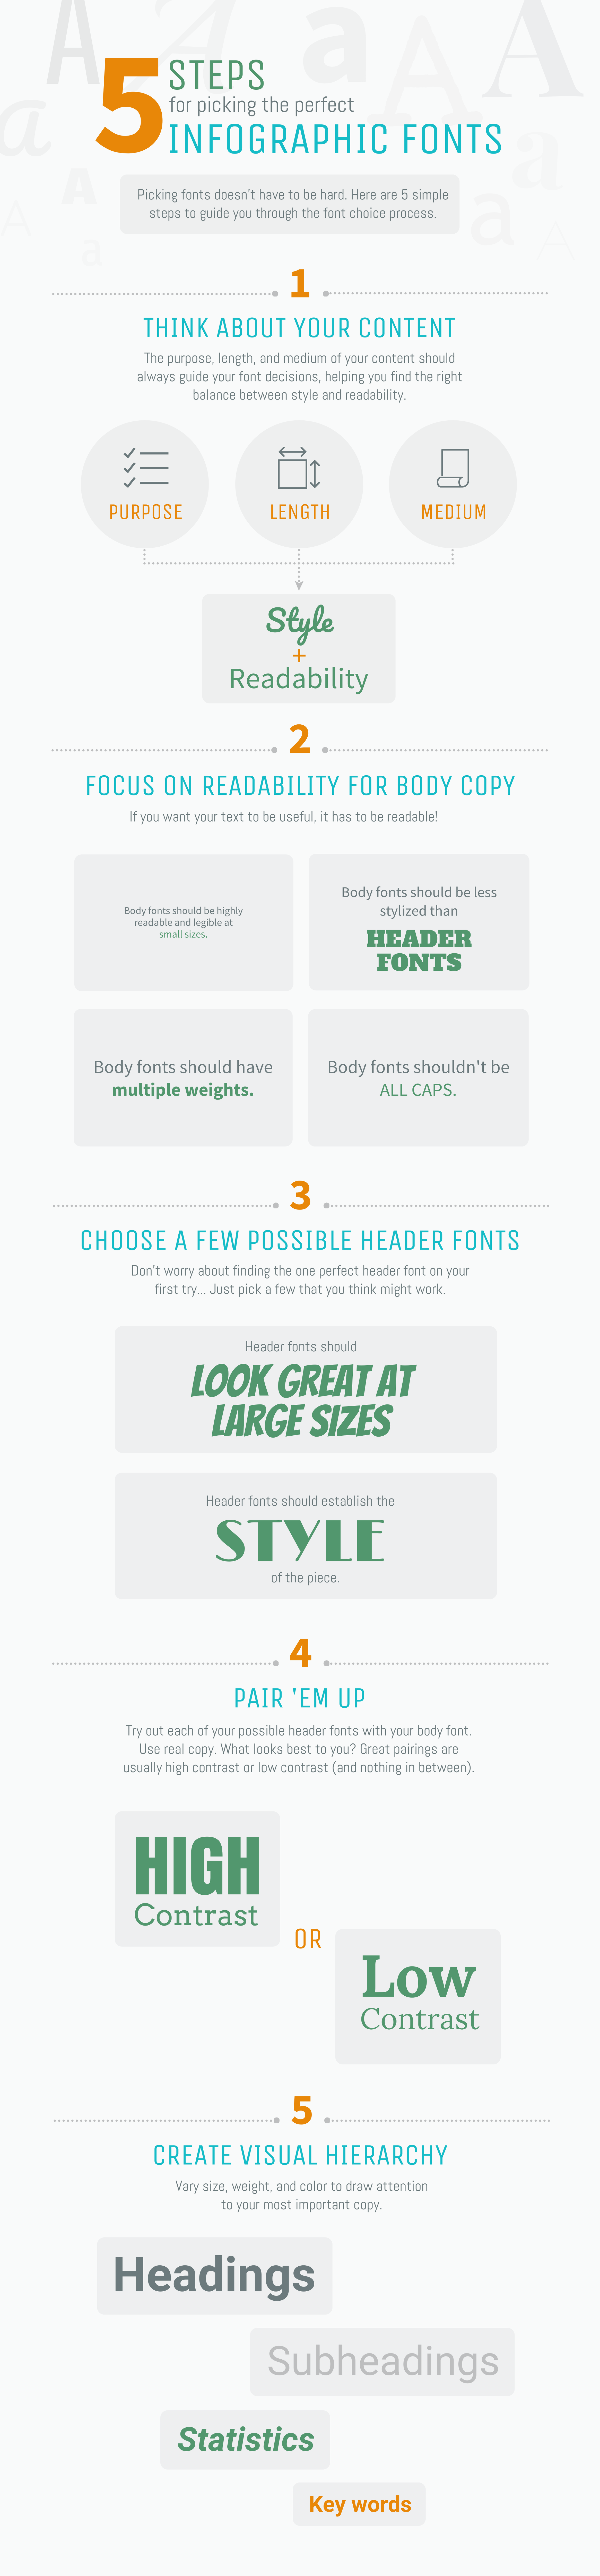 5 Steps For Picking The Perfect Font Infographic1